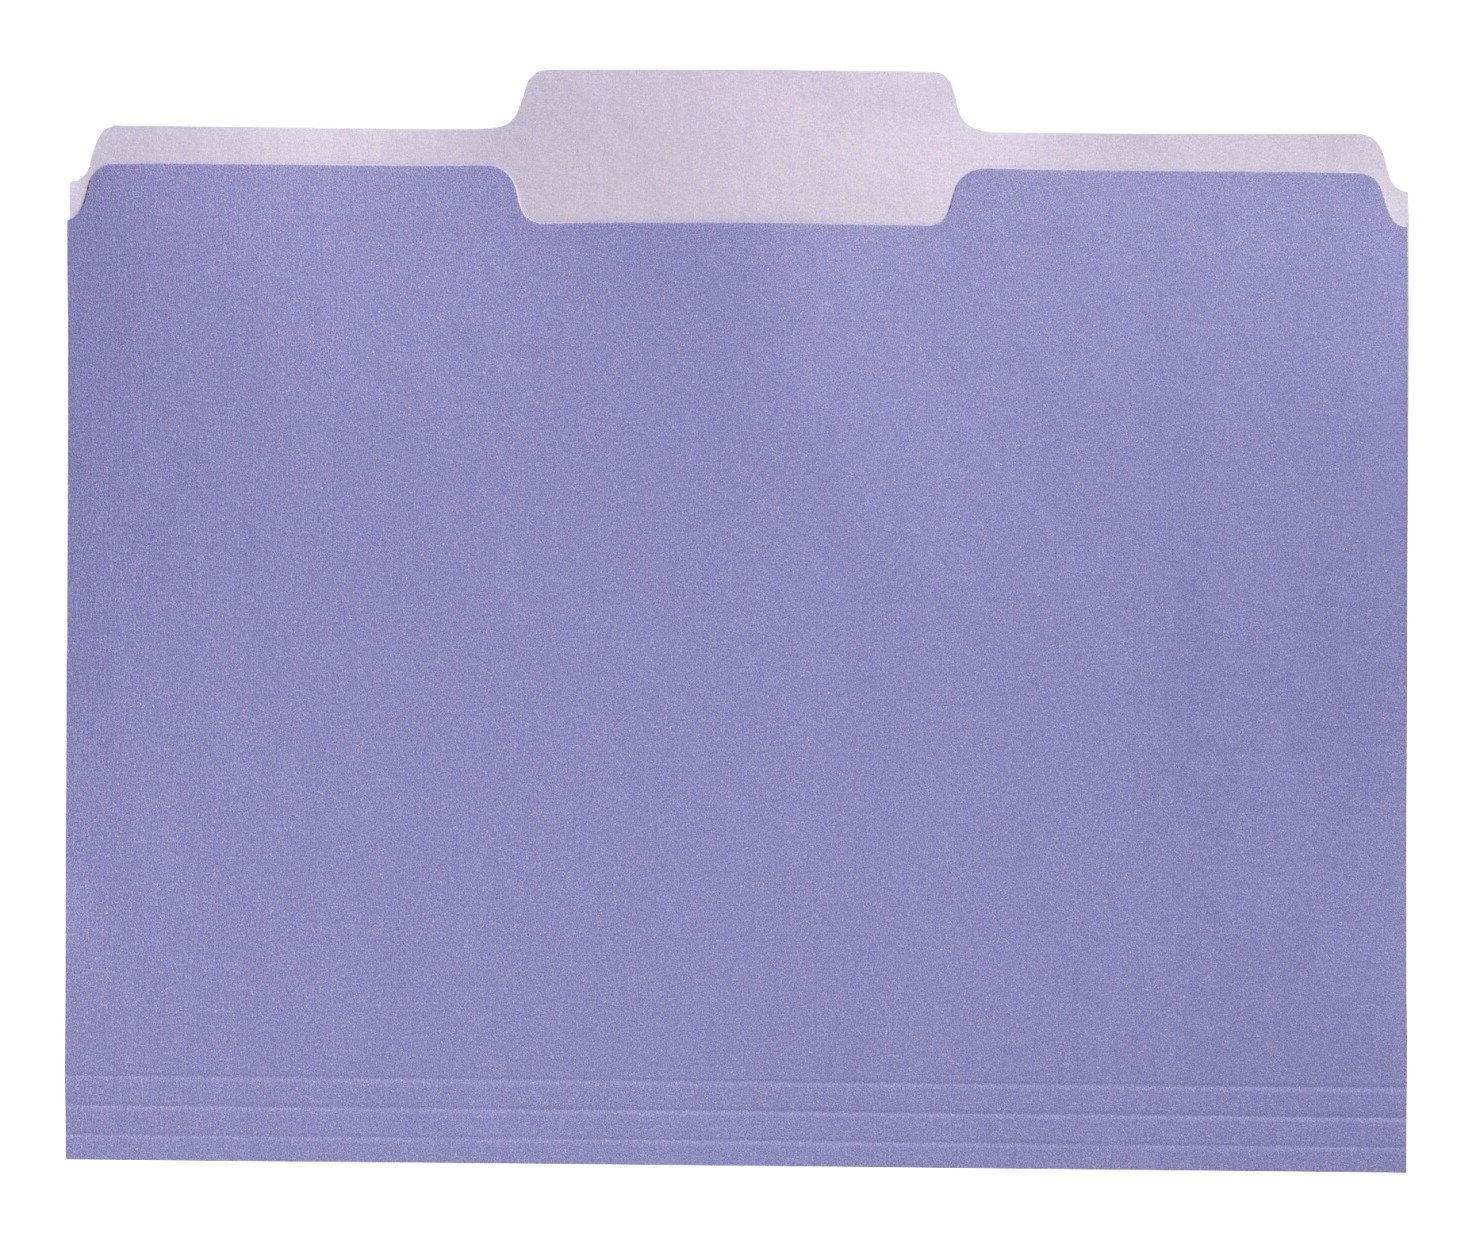 School Smart Two Tone Reversible Colored 1/3 Cut File Folders - Letter Size - Pack of 100 - Lavender